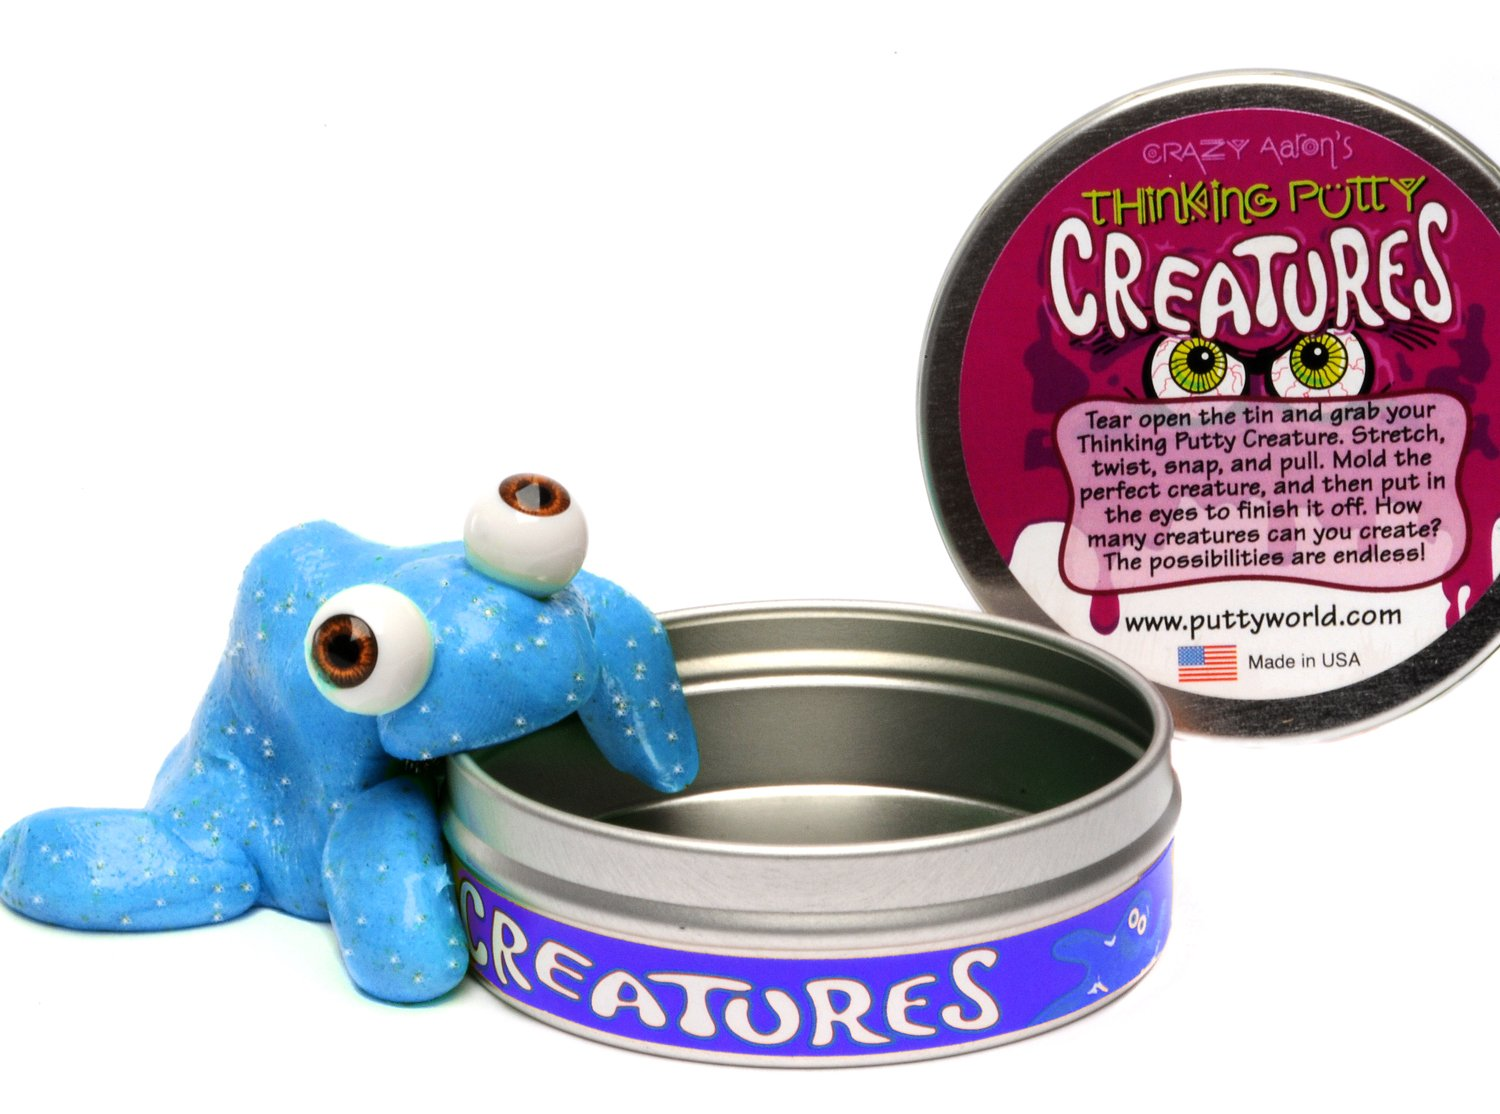 Crazy Aaron's Putty World Creature Blue Putty